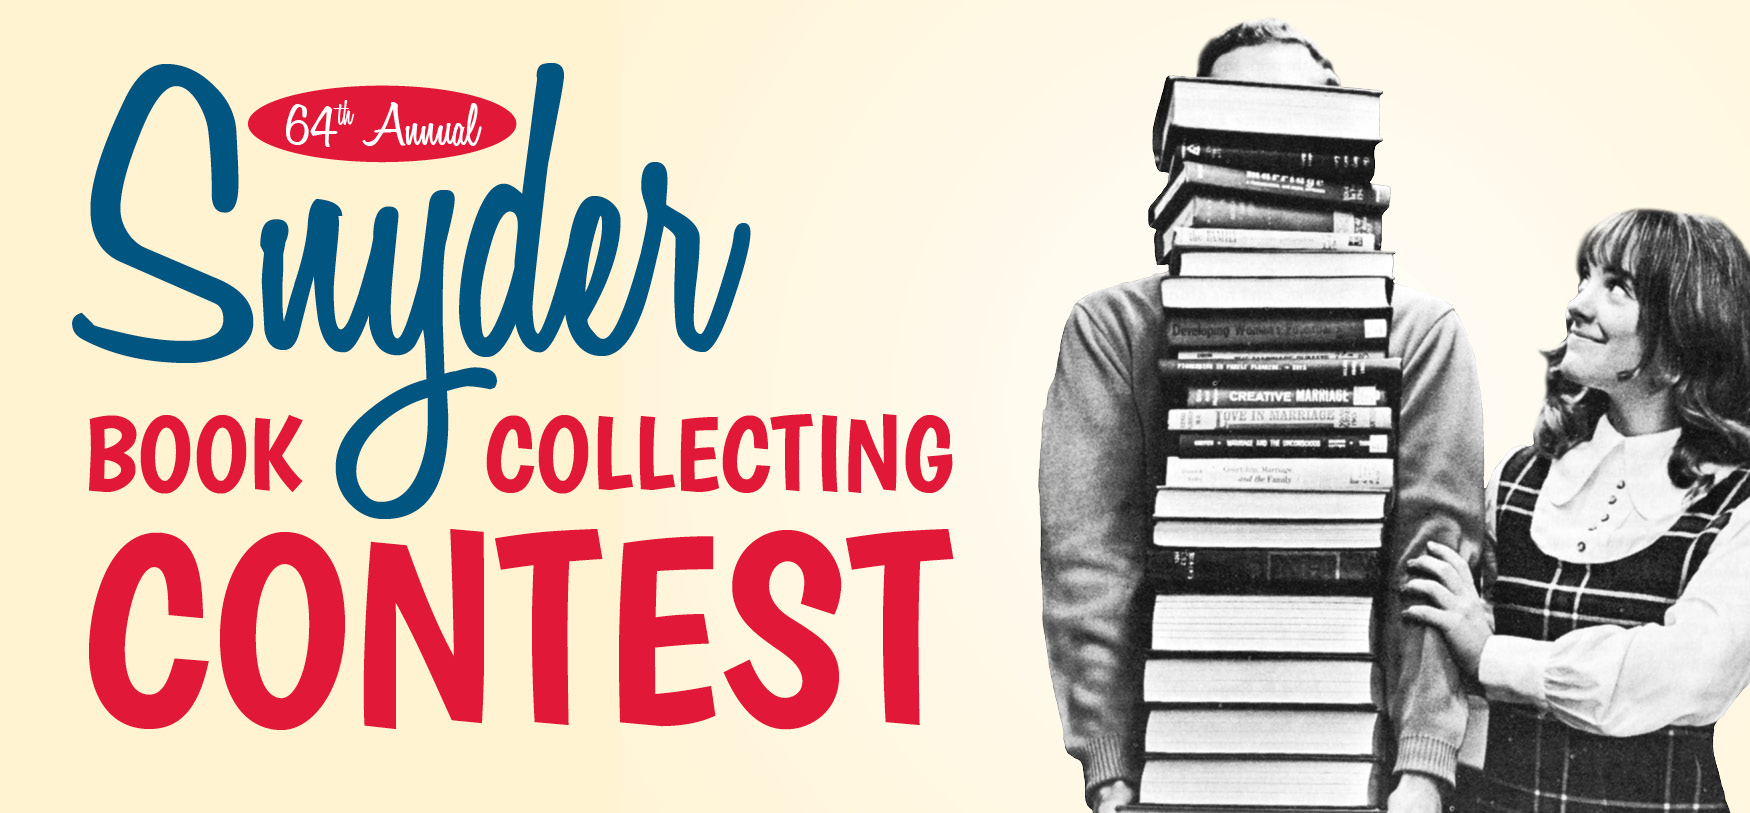 64th Annual Snyder Book Collecting Contest (display banner)